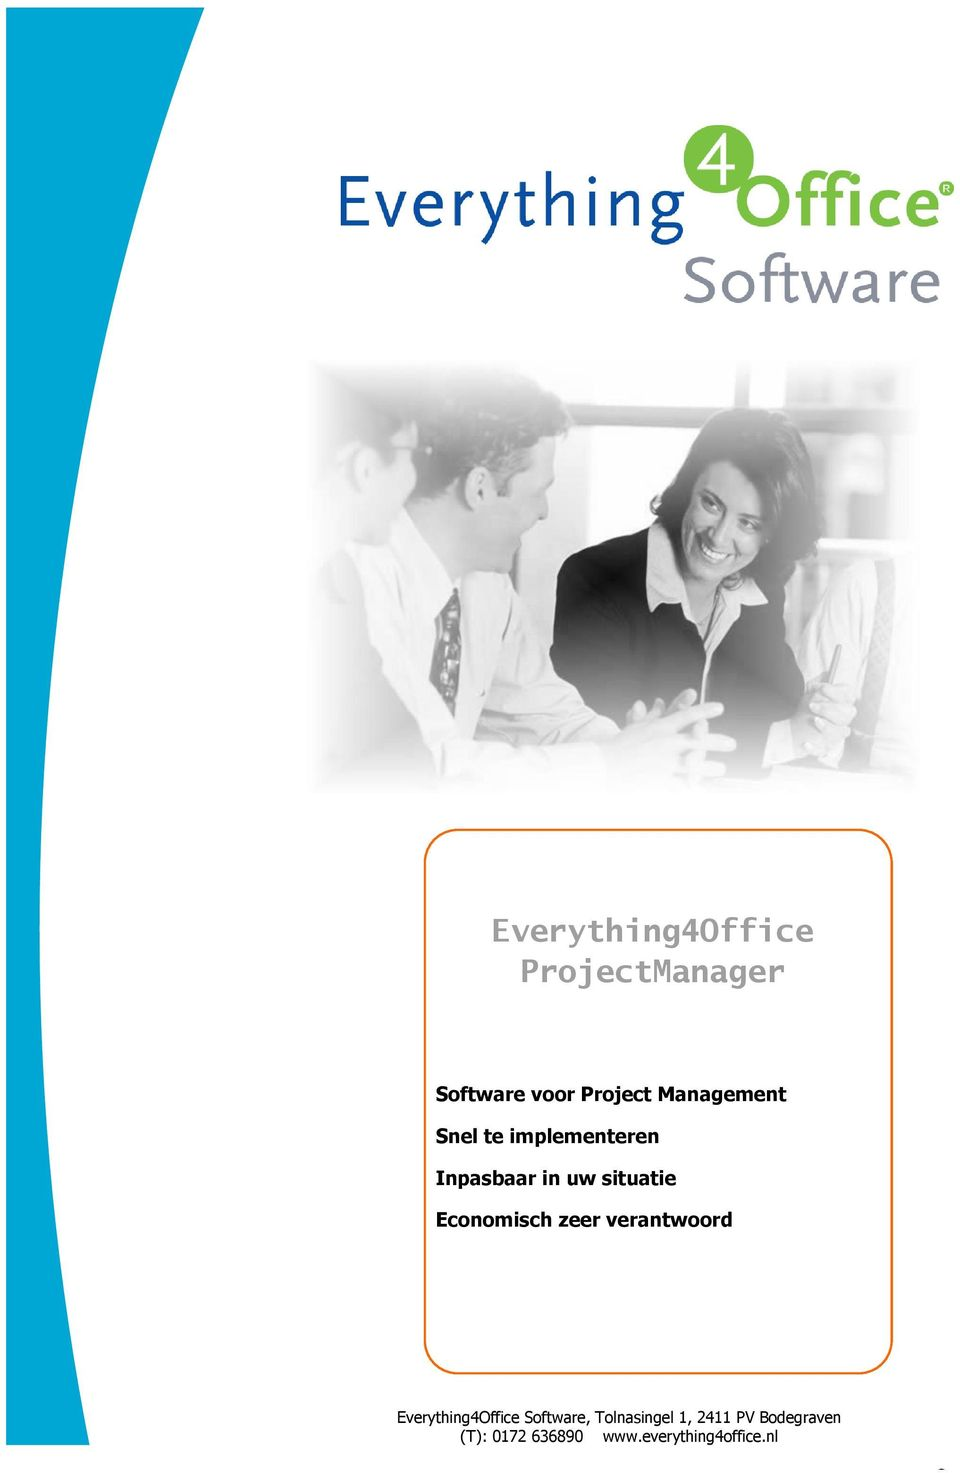 Everything4Office Software, Tolnasingel 1, 2411 PV Bodegraven (T):